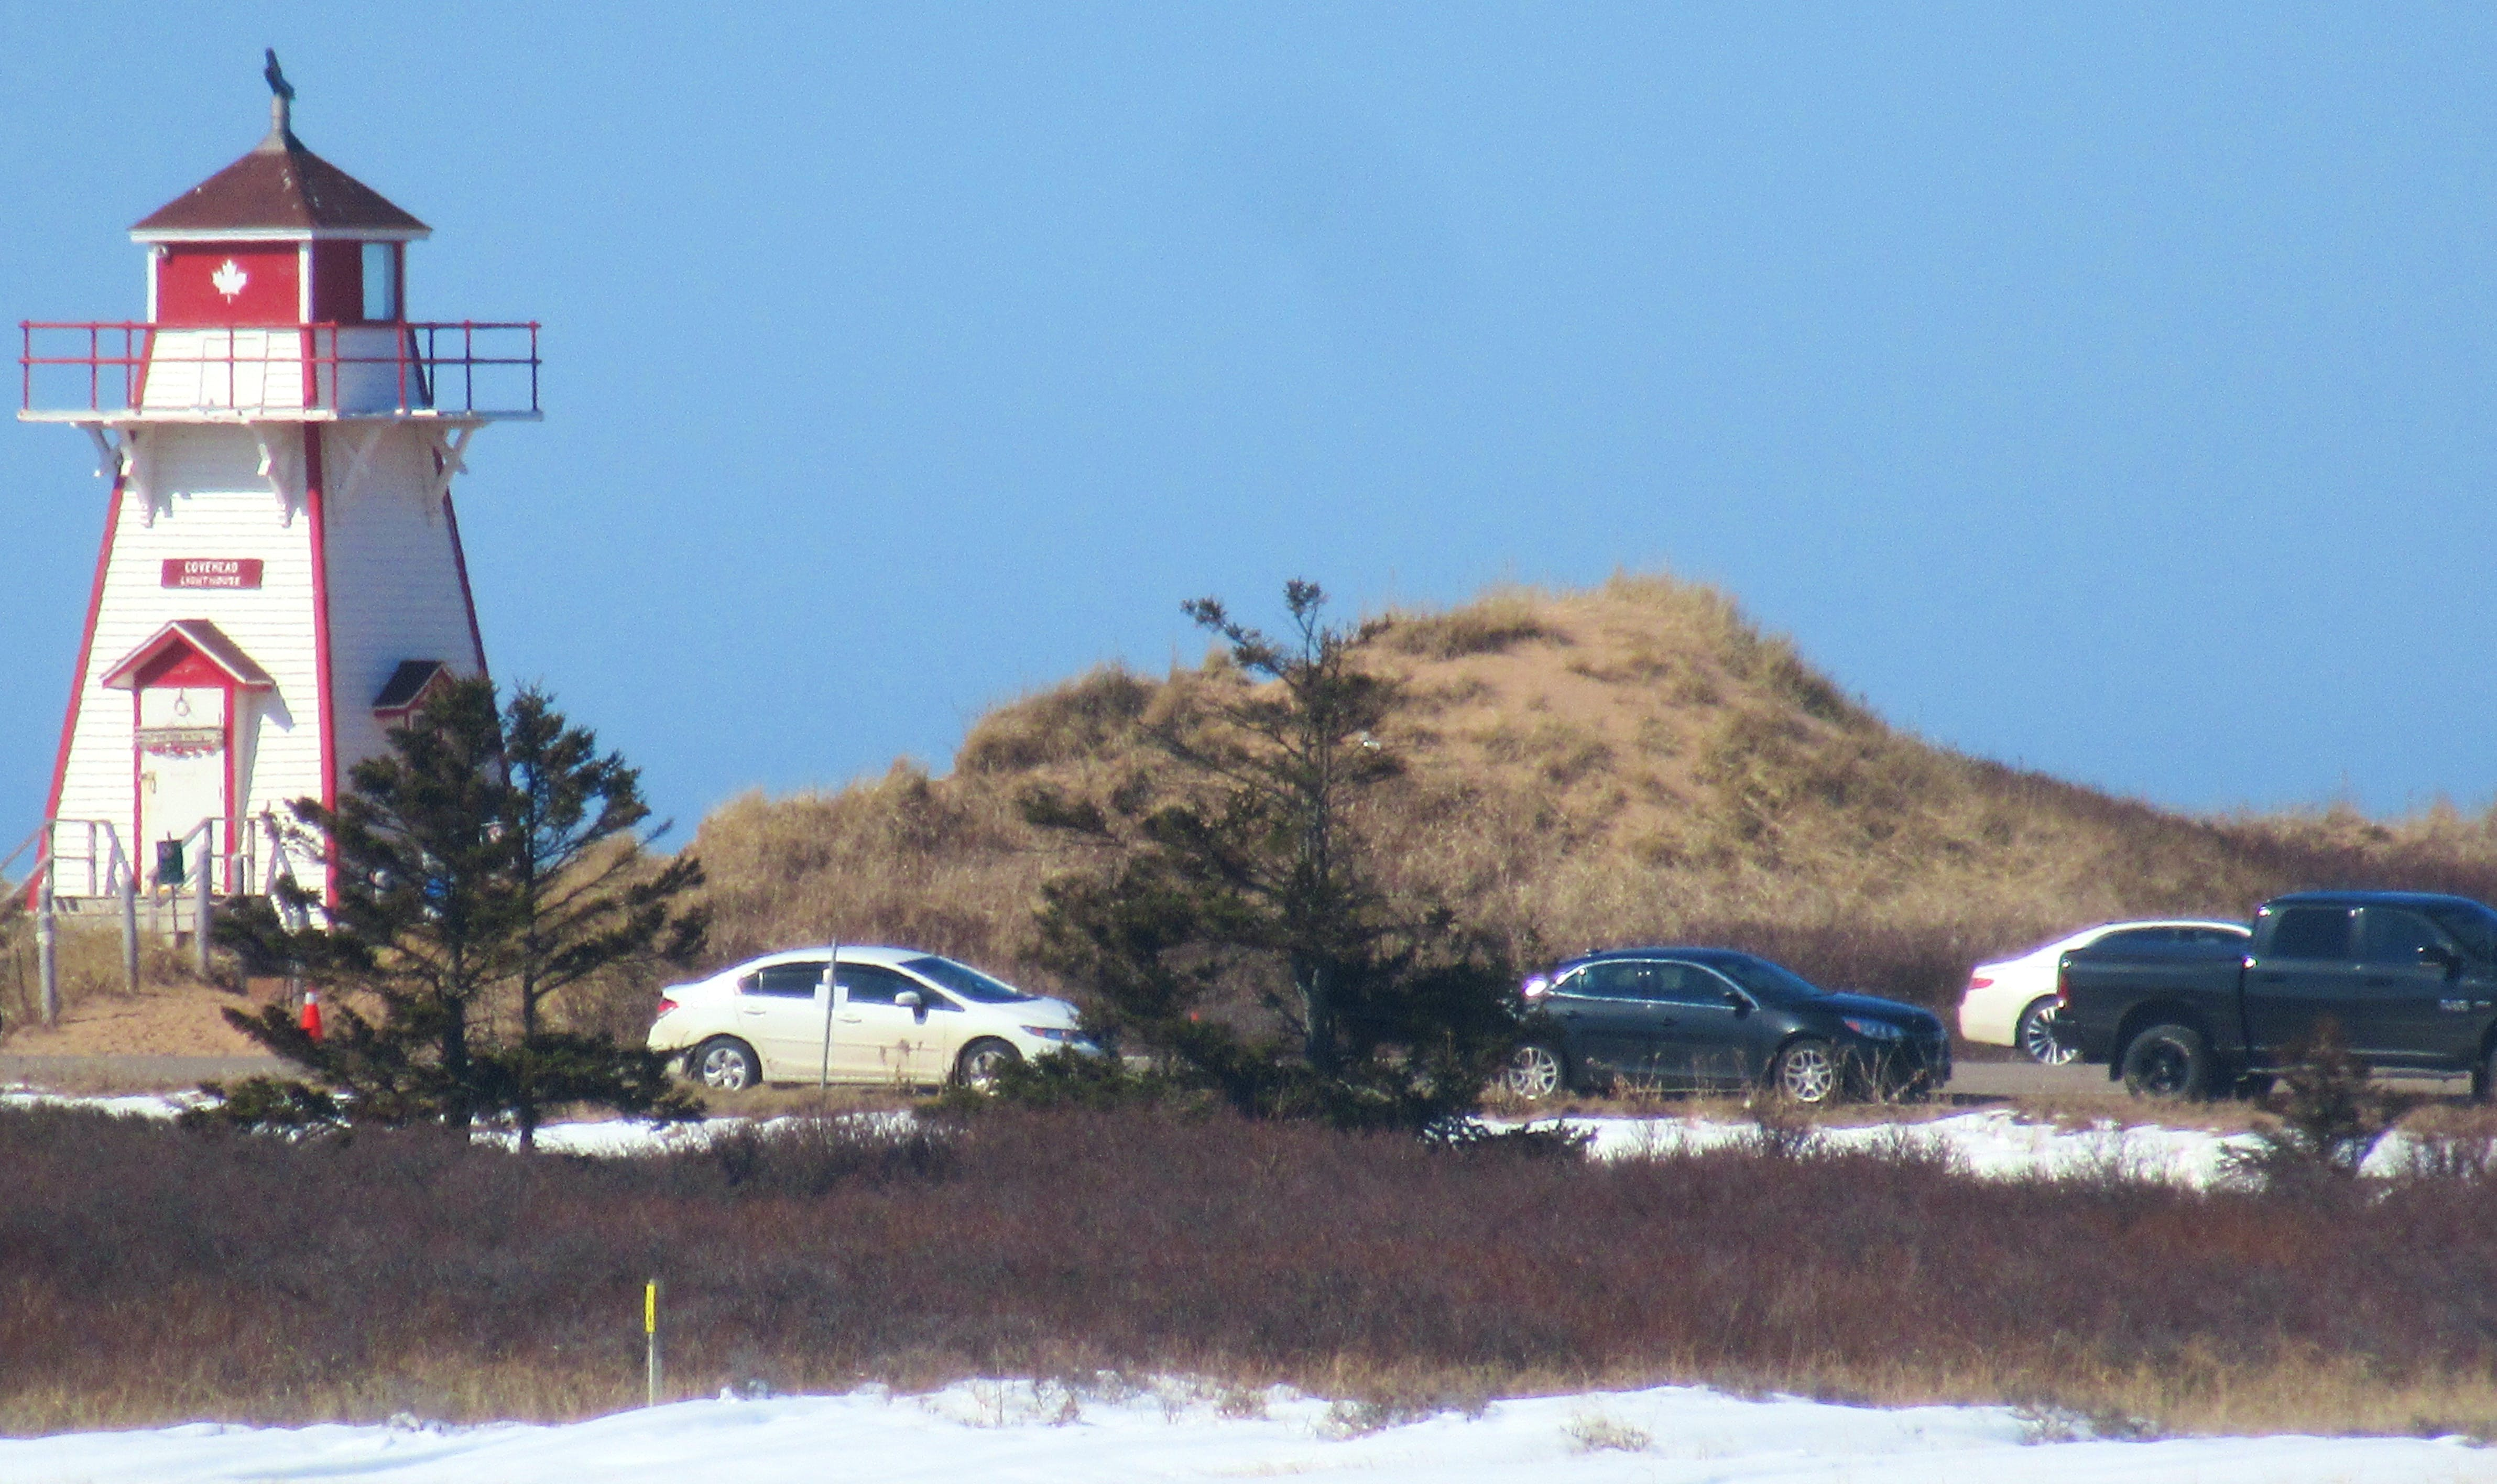 This picture taken Sunday at the Covehead Lighthouse, adjacent to Covehead Harbour in the P.E.I. National Park, shows cars parked on the Gulfshore Parkway East. A no-parking regulation, which was announced on Friday, prohibits parking in the P.E.I. National Park, including along highways and roads, as well as in parking lots.